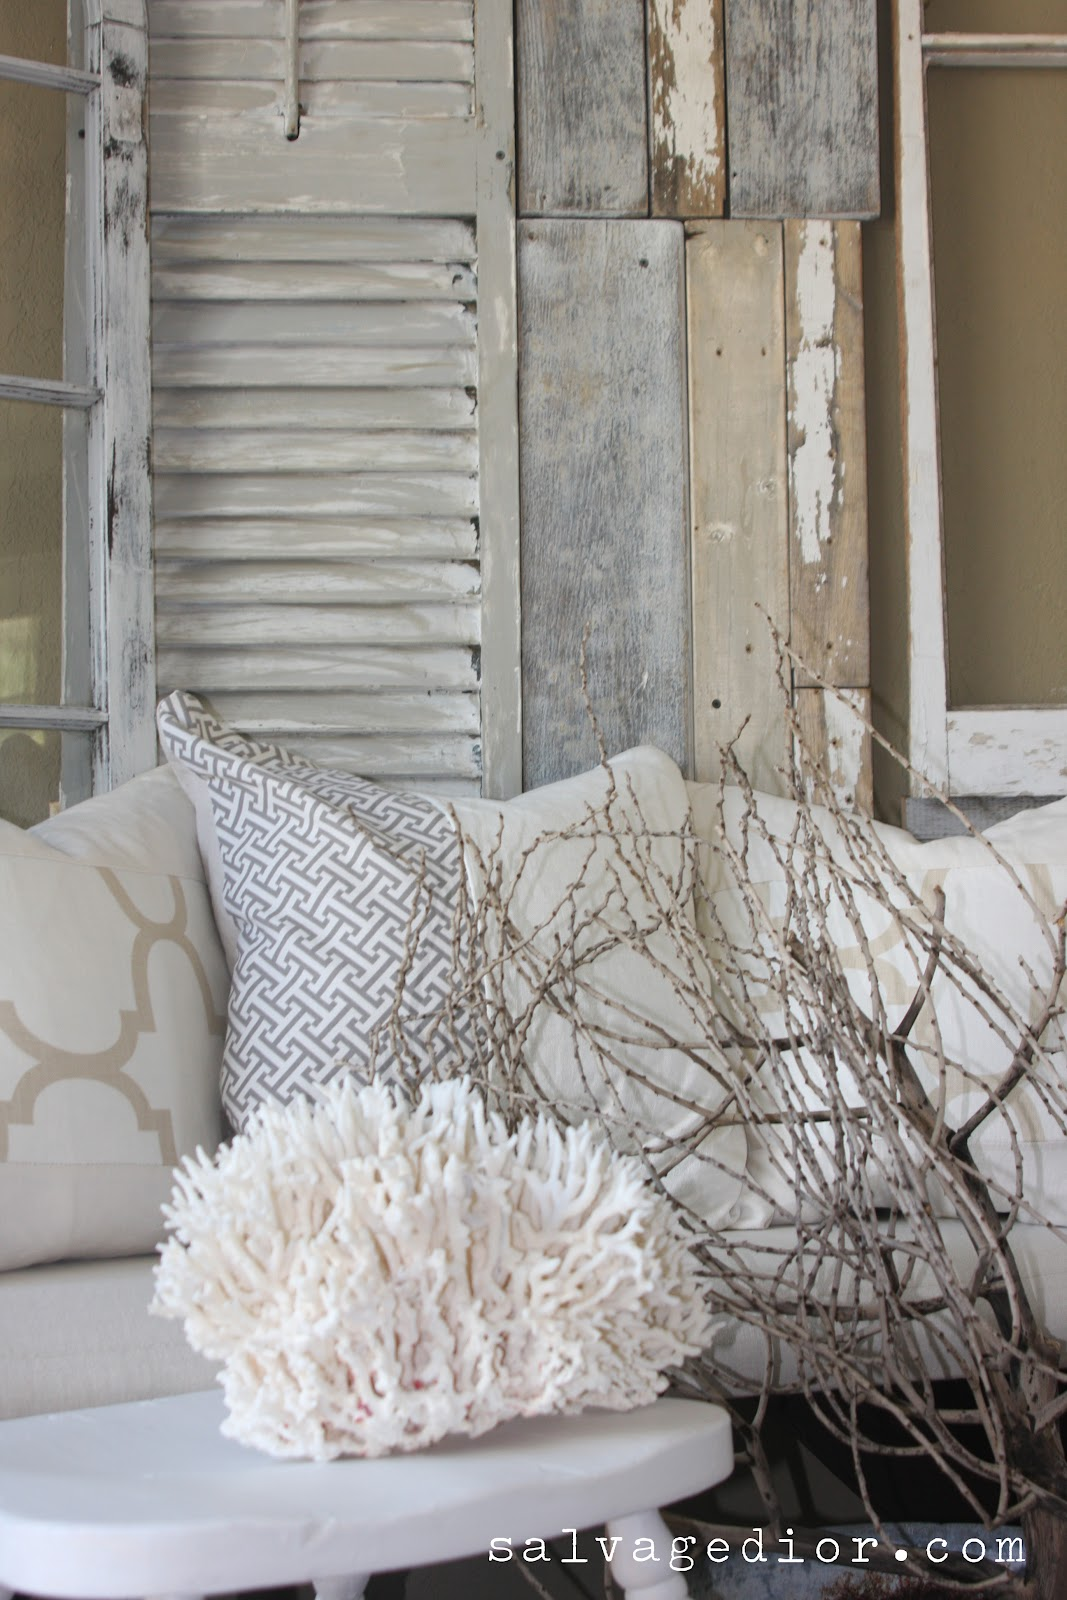 Rustic coastal summer decor an interview with salvage for Coastal beach home decor